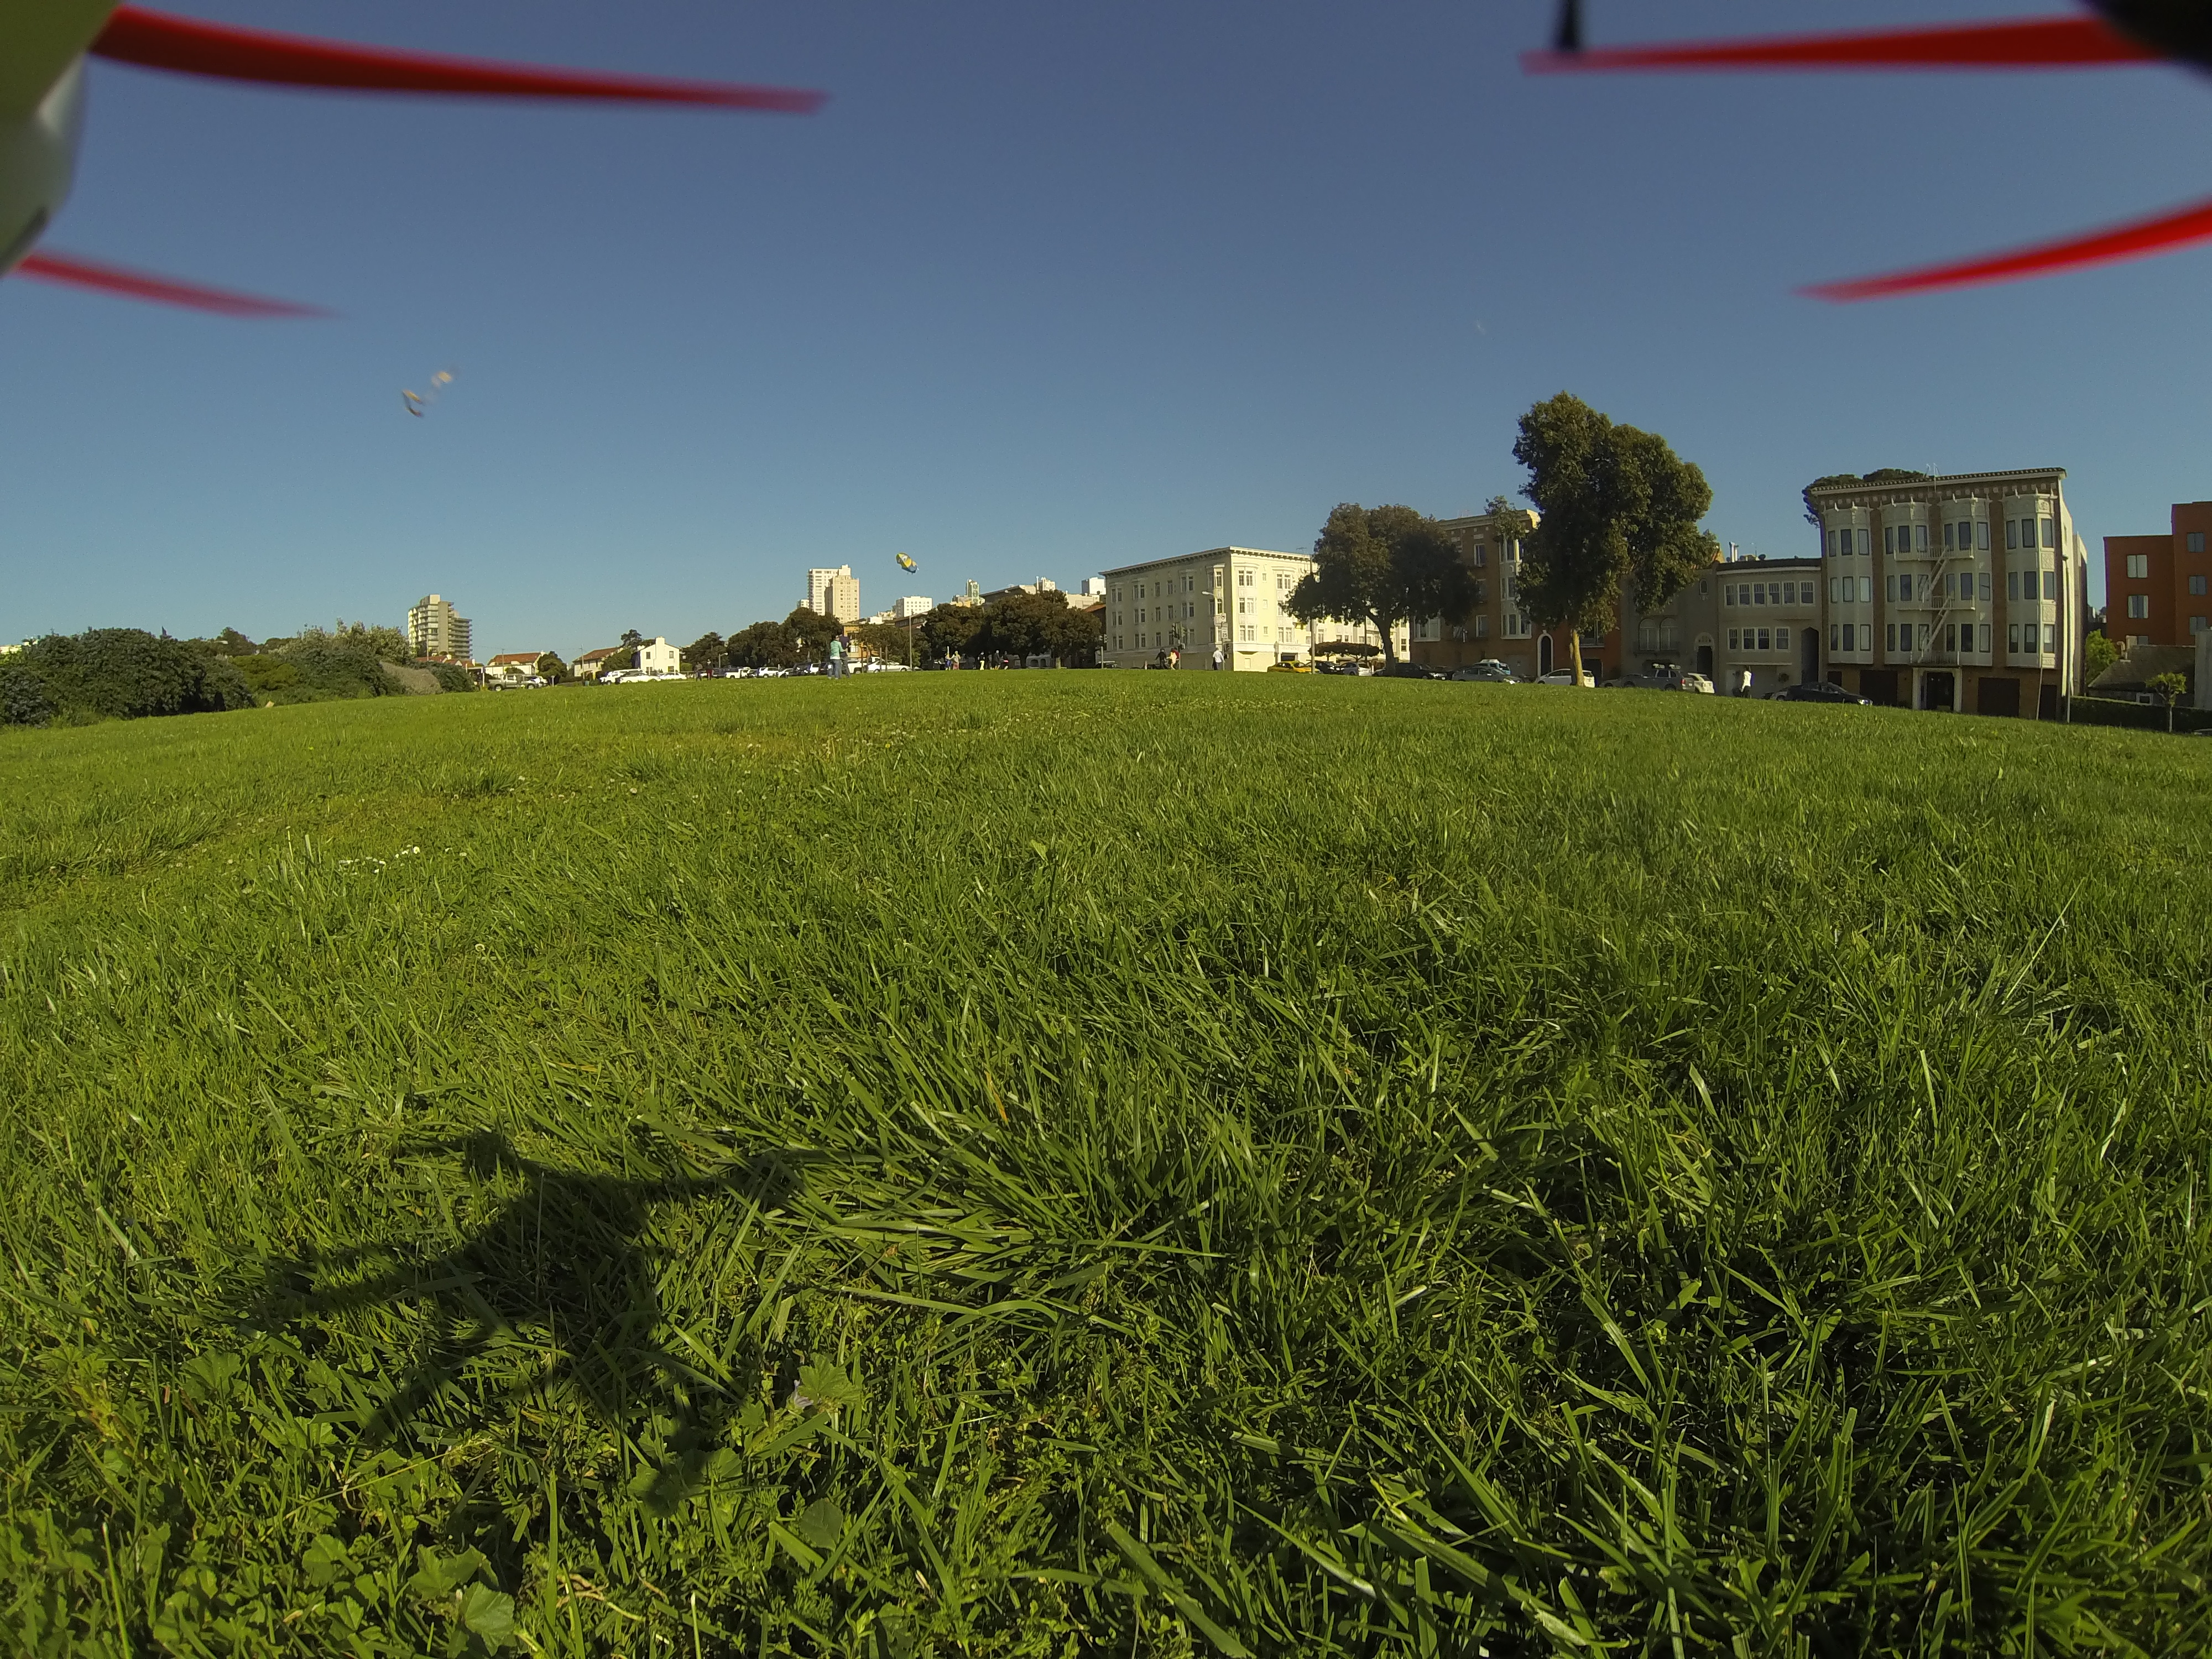 San Francisco's Great Meadow Park, as seen from a GoPro attached to a Blade 350 QX. Photo by Signe Brewster.